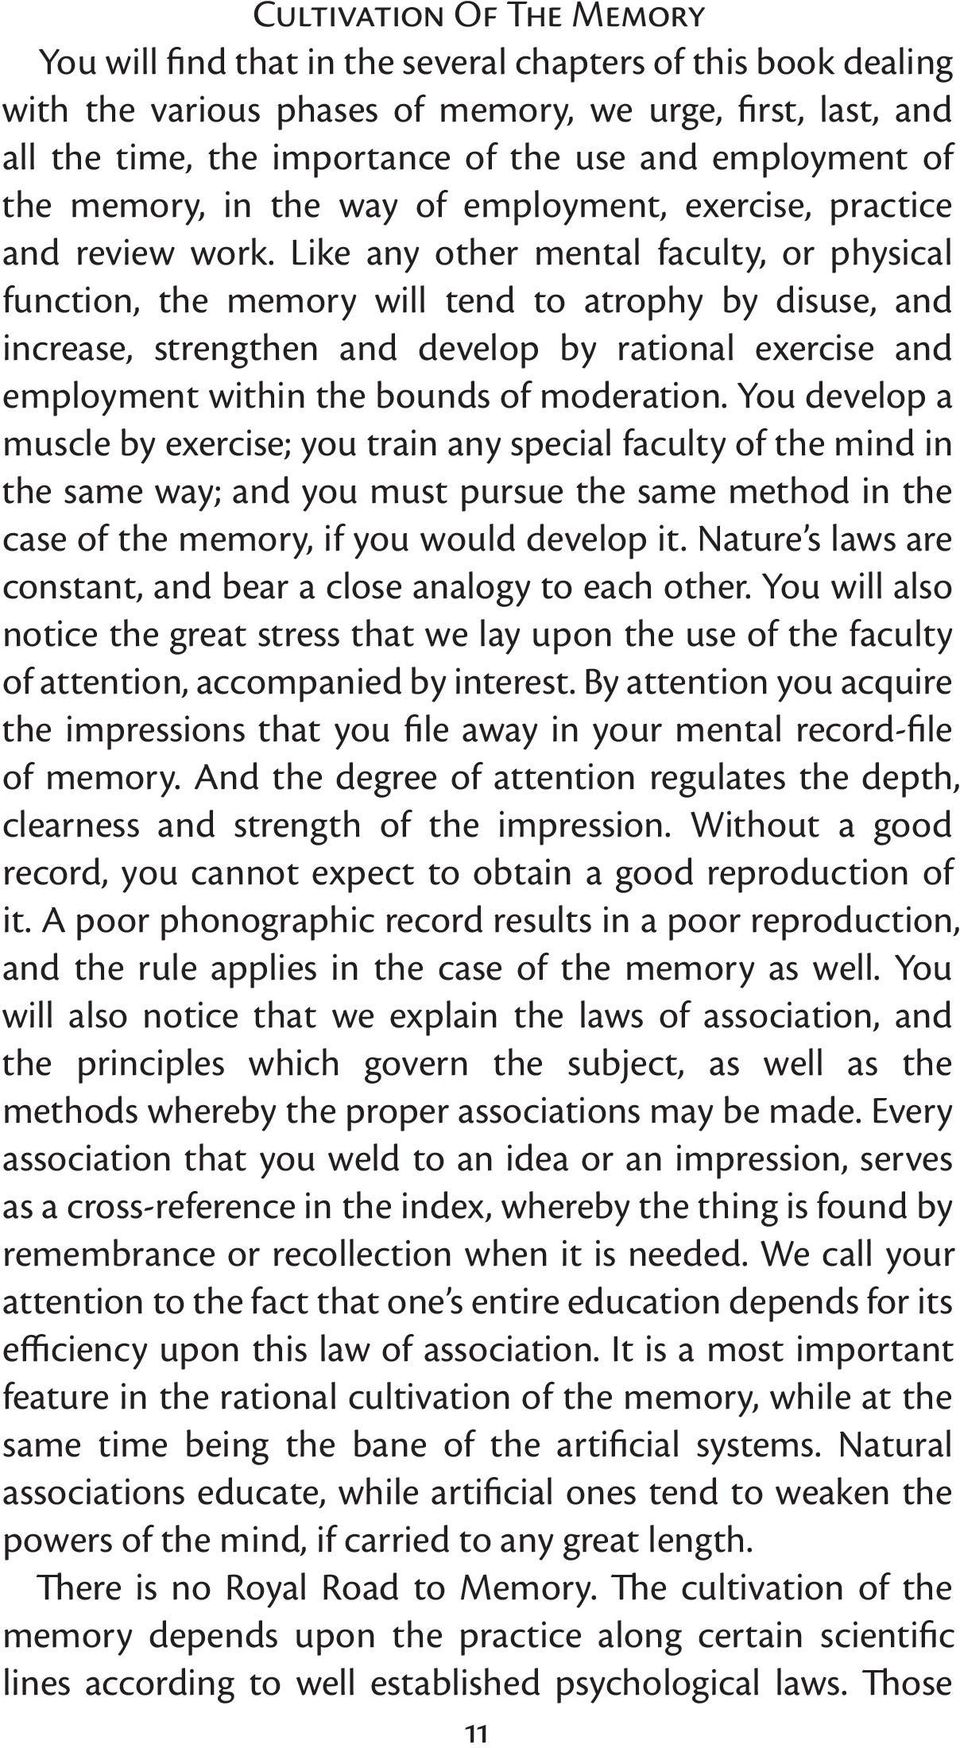 Like any other mental faculty, or physical function, the memory will tend to atrophy by disuse, and increase, strengthen and develop by rational exercise and employment within the bounds of